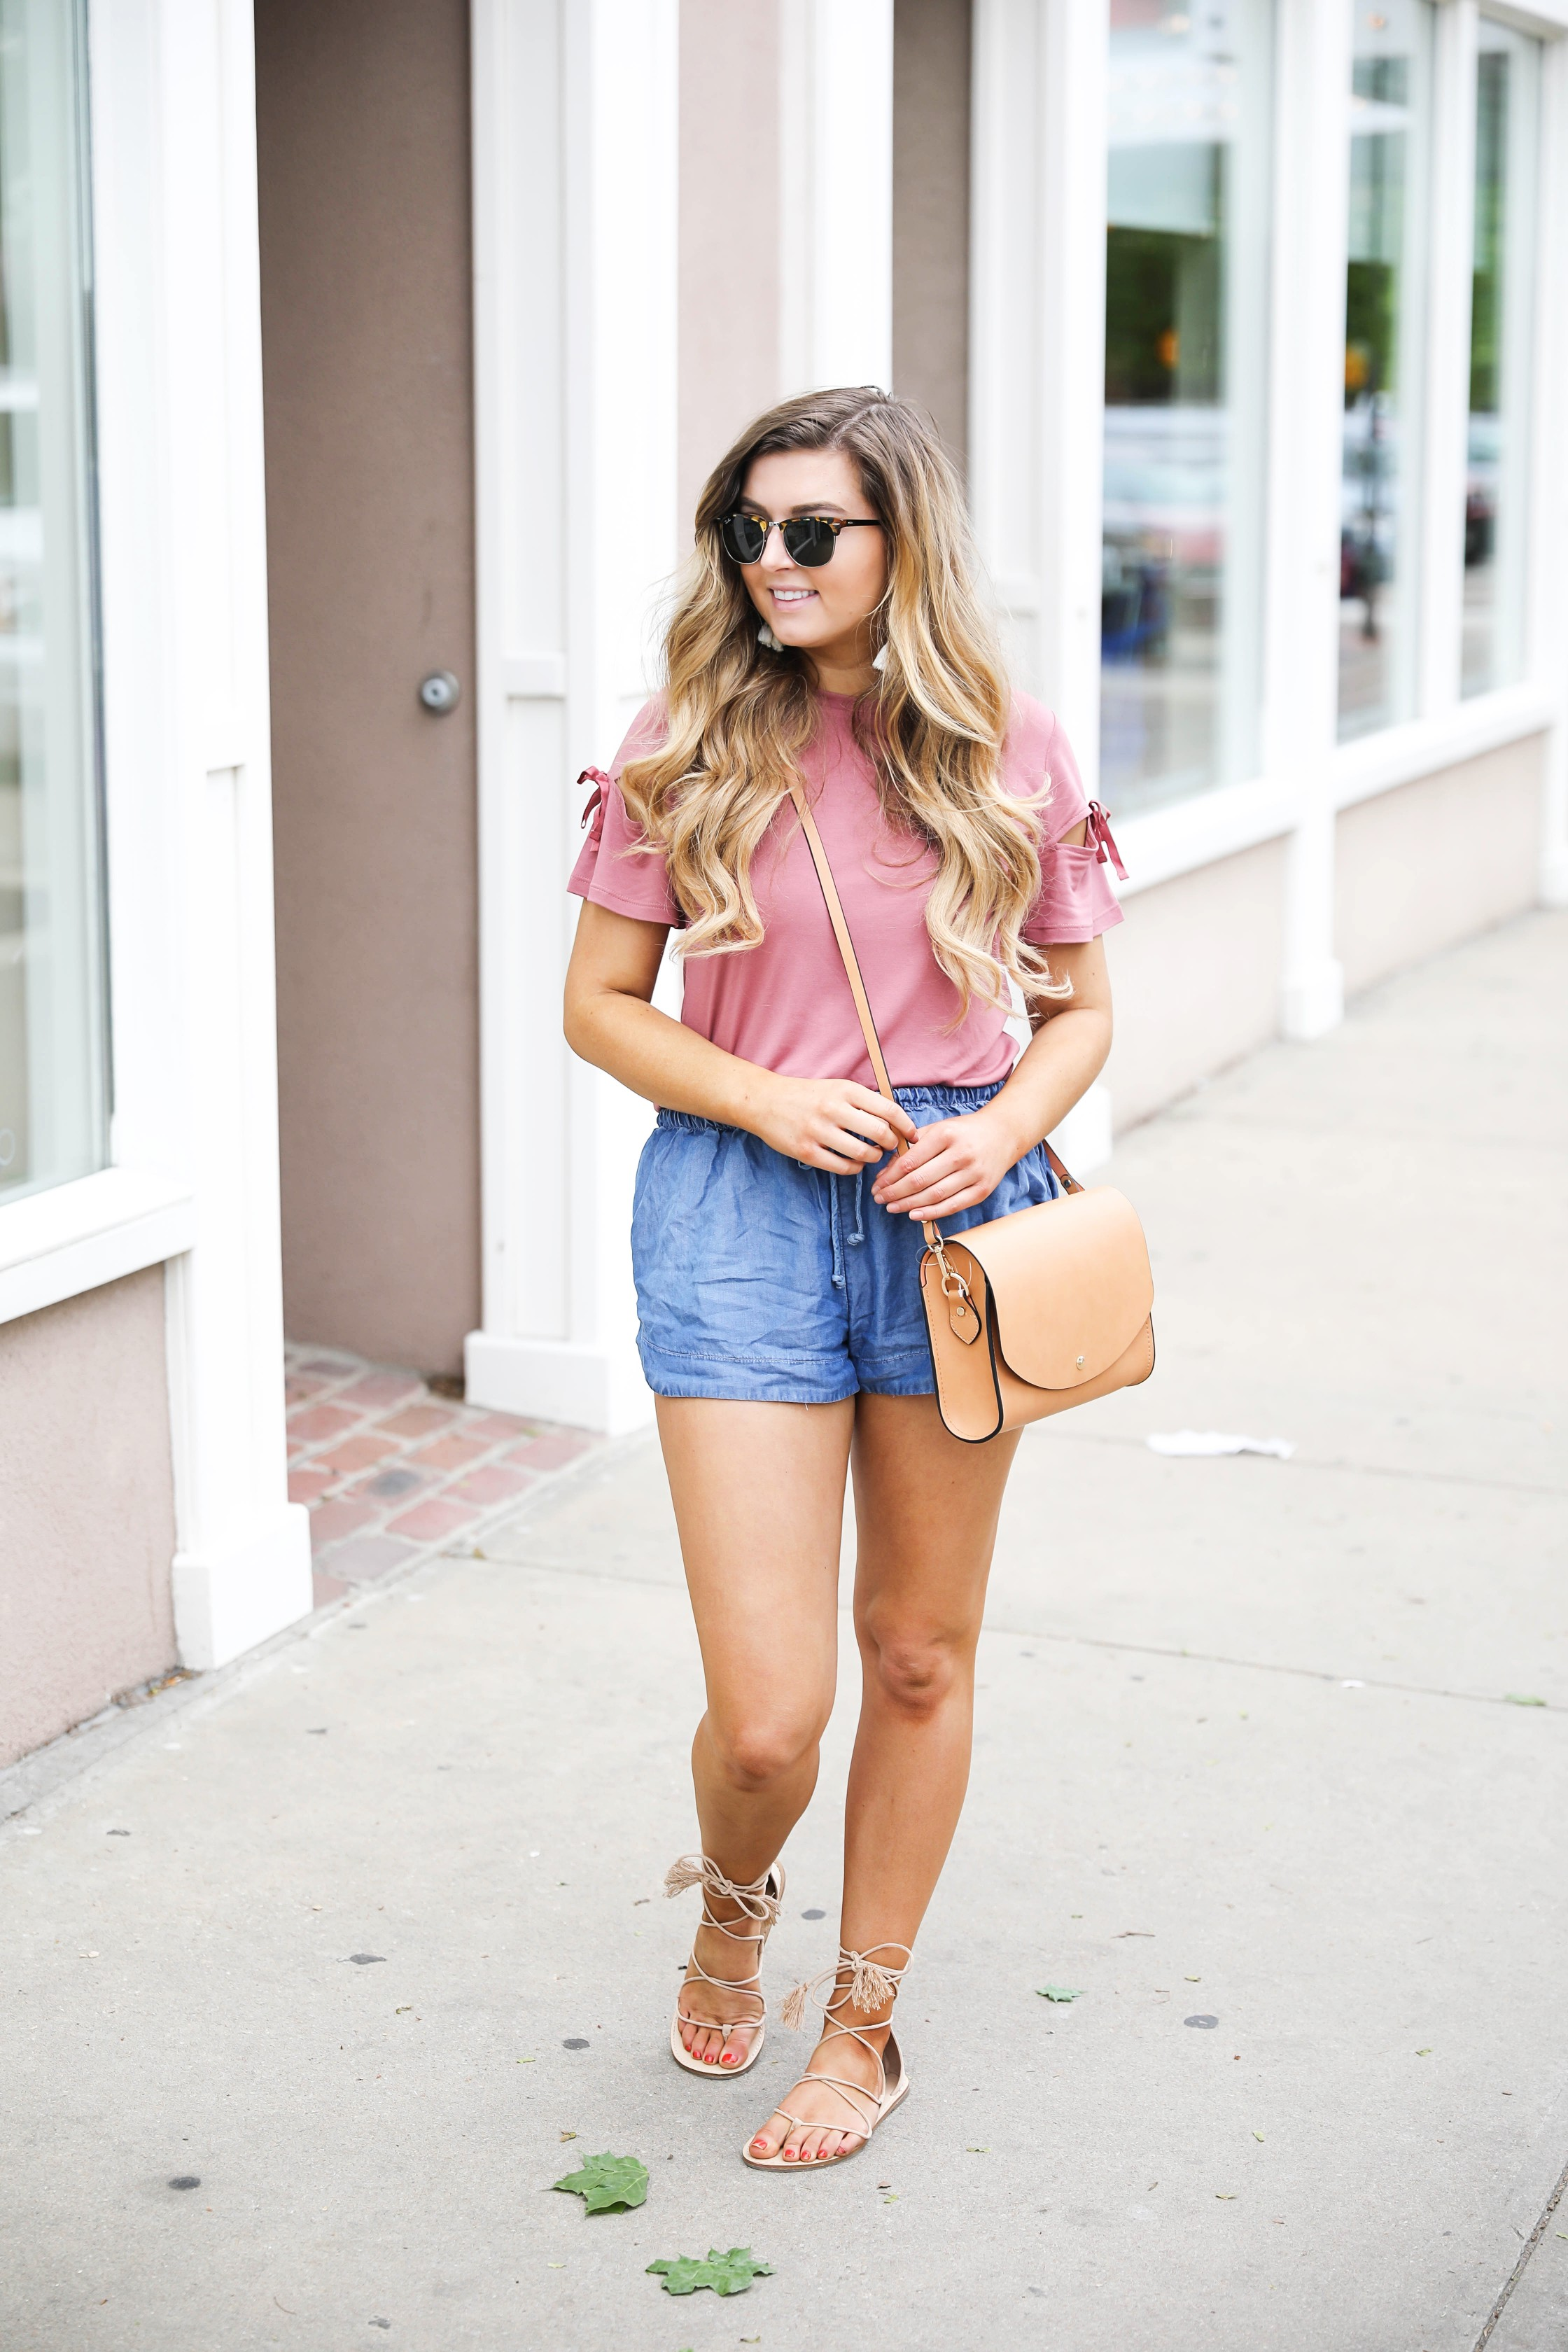 Slouchy pants and tee casual outfit with white tassel earrings and brown cross body by fashion blogger Lauren Lindmark on fashion blog daily dose of charm